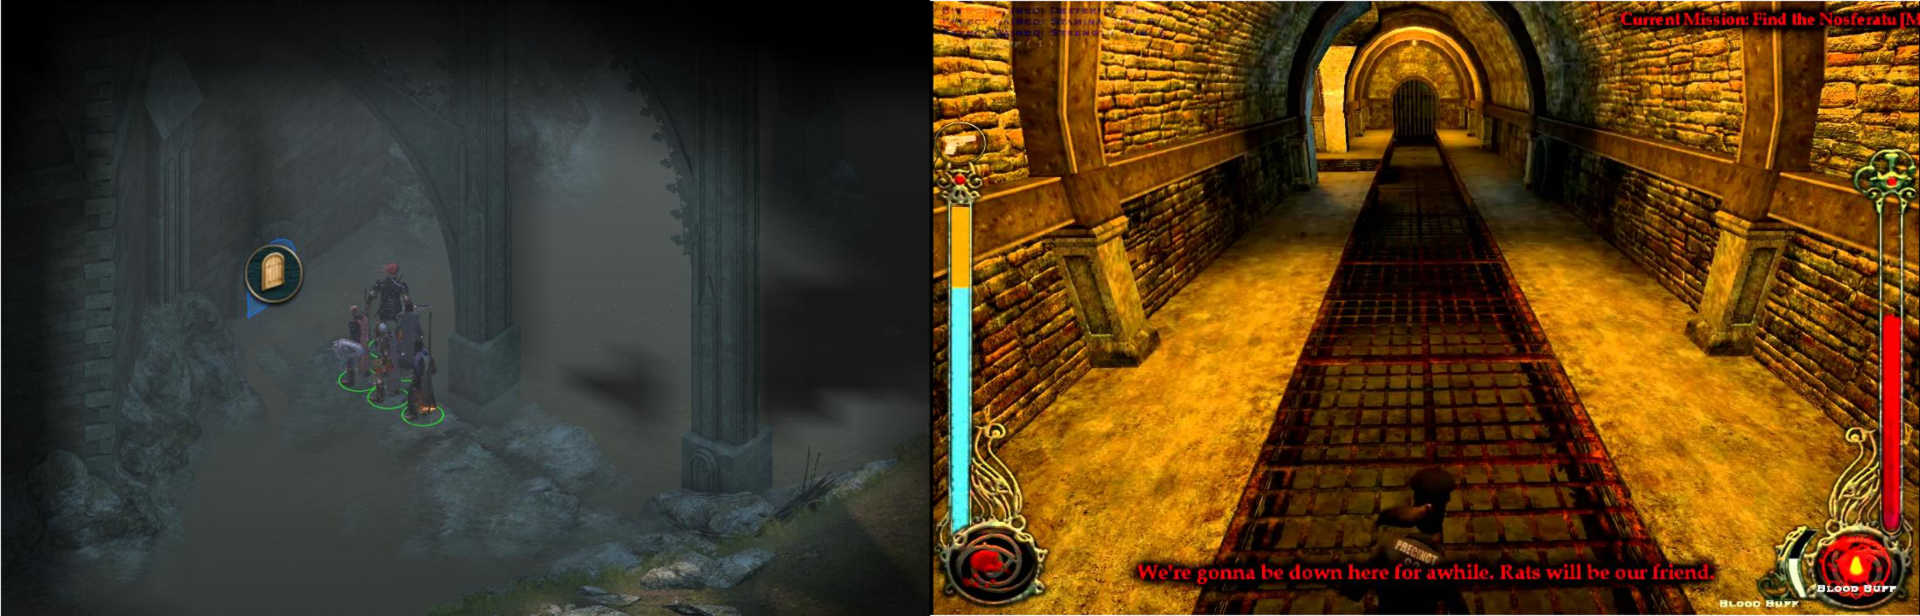 Image showing the entrance to a sewer level from Pillars of Eternity and the sewer level from Vampire: The Masquerade Bloodlines